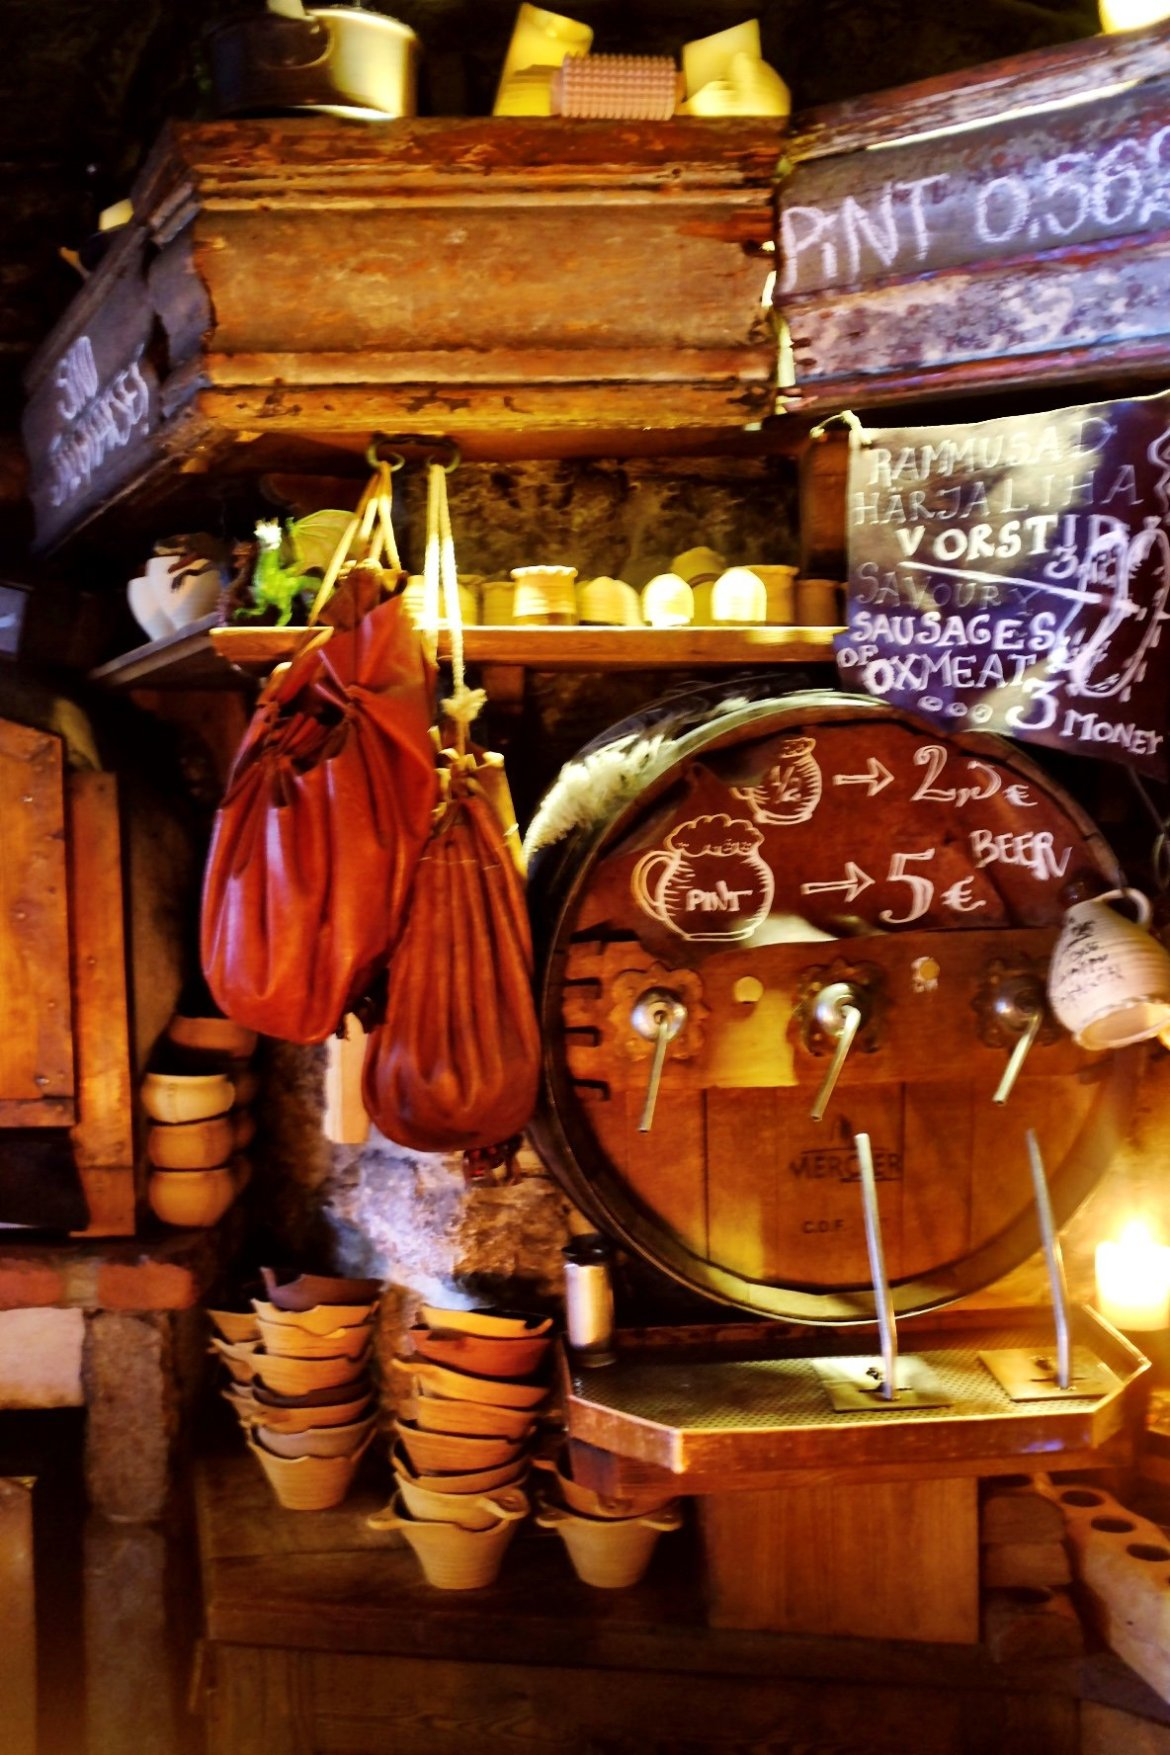 The Draakon interior with a barrel, some ceramic bowls, some bags and the menu written all over the place. Situated in Tallinn